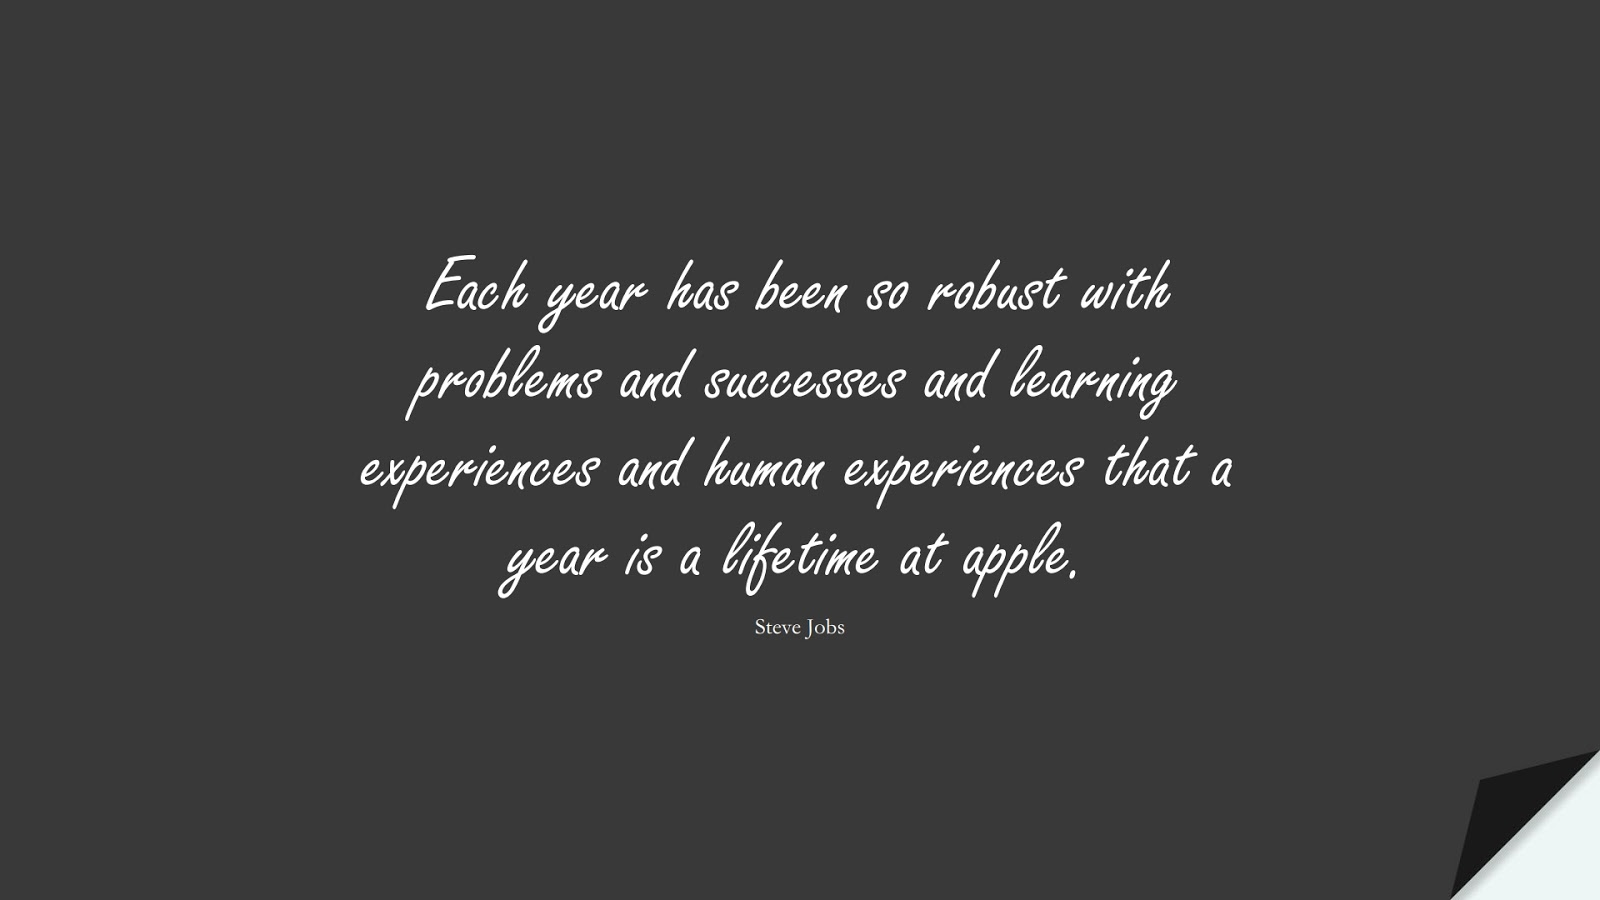 Each year has been so robust with problems and successes and learning experiences and human experiences that a year is a lifetime at apple. (Steve Jobs);  #SteveJobsQuotes